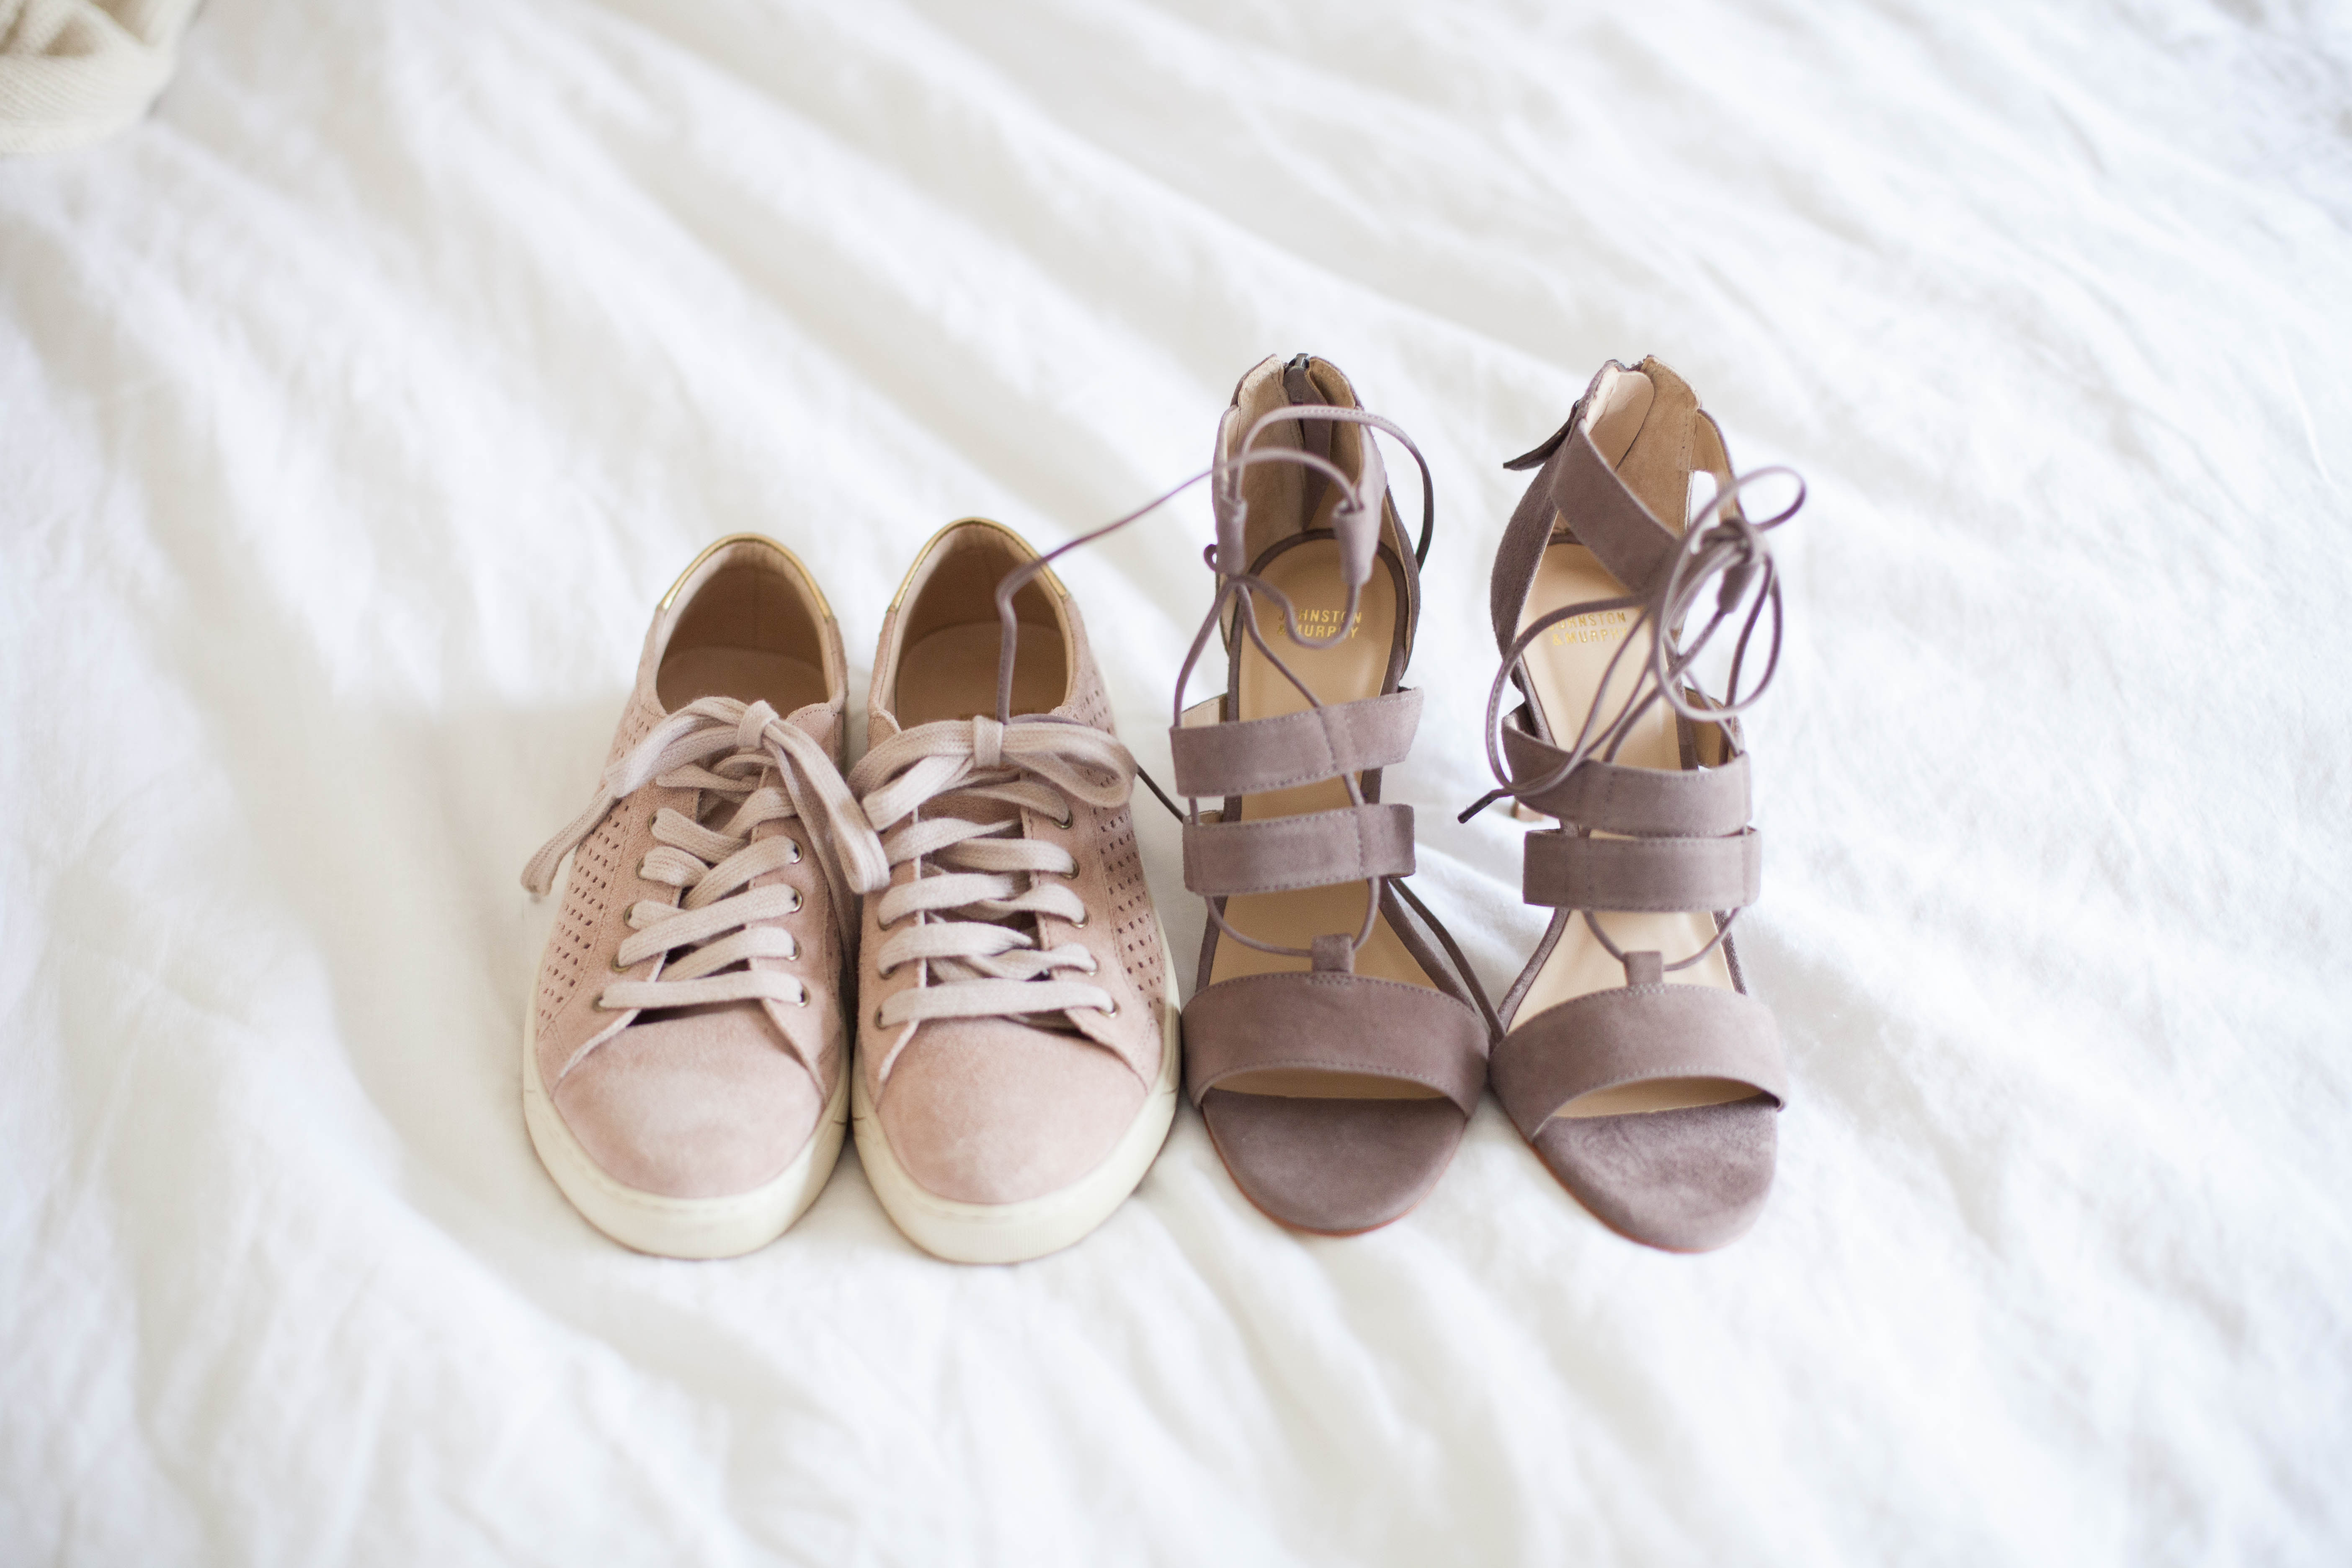 You NEED these two pairs of show for your spring shoe wardrobe!